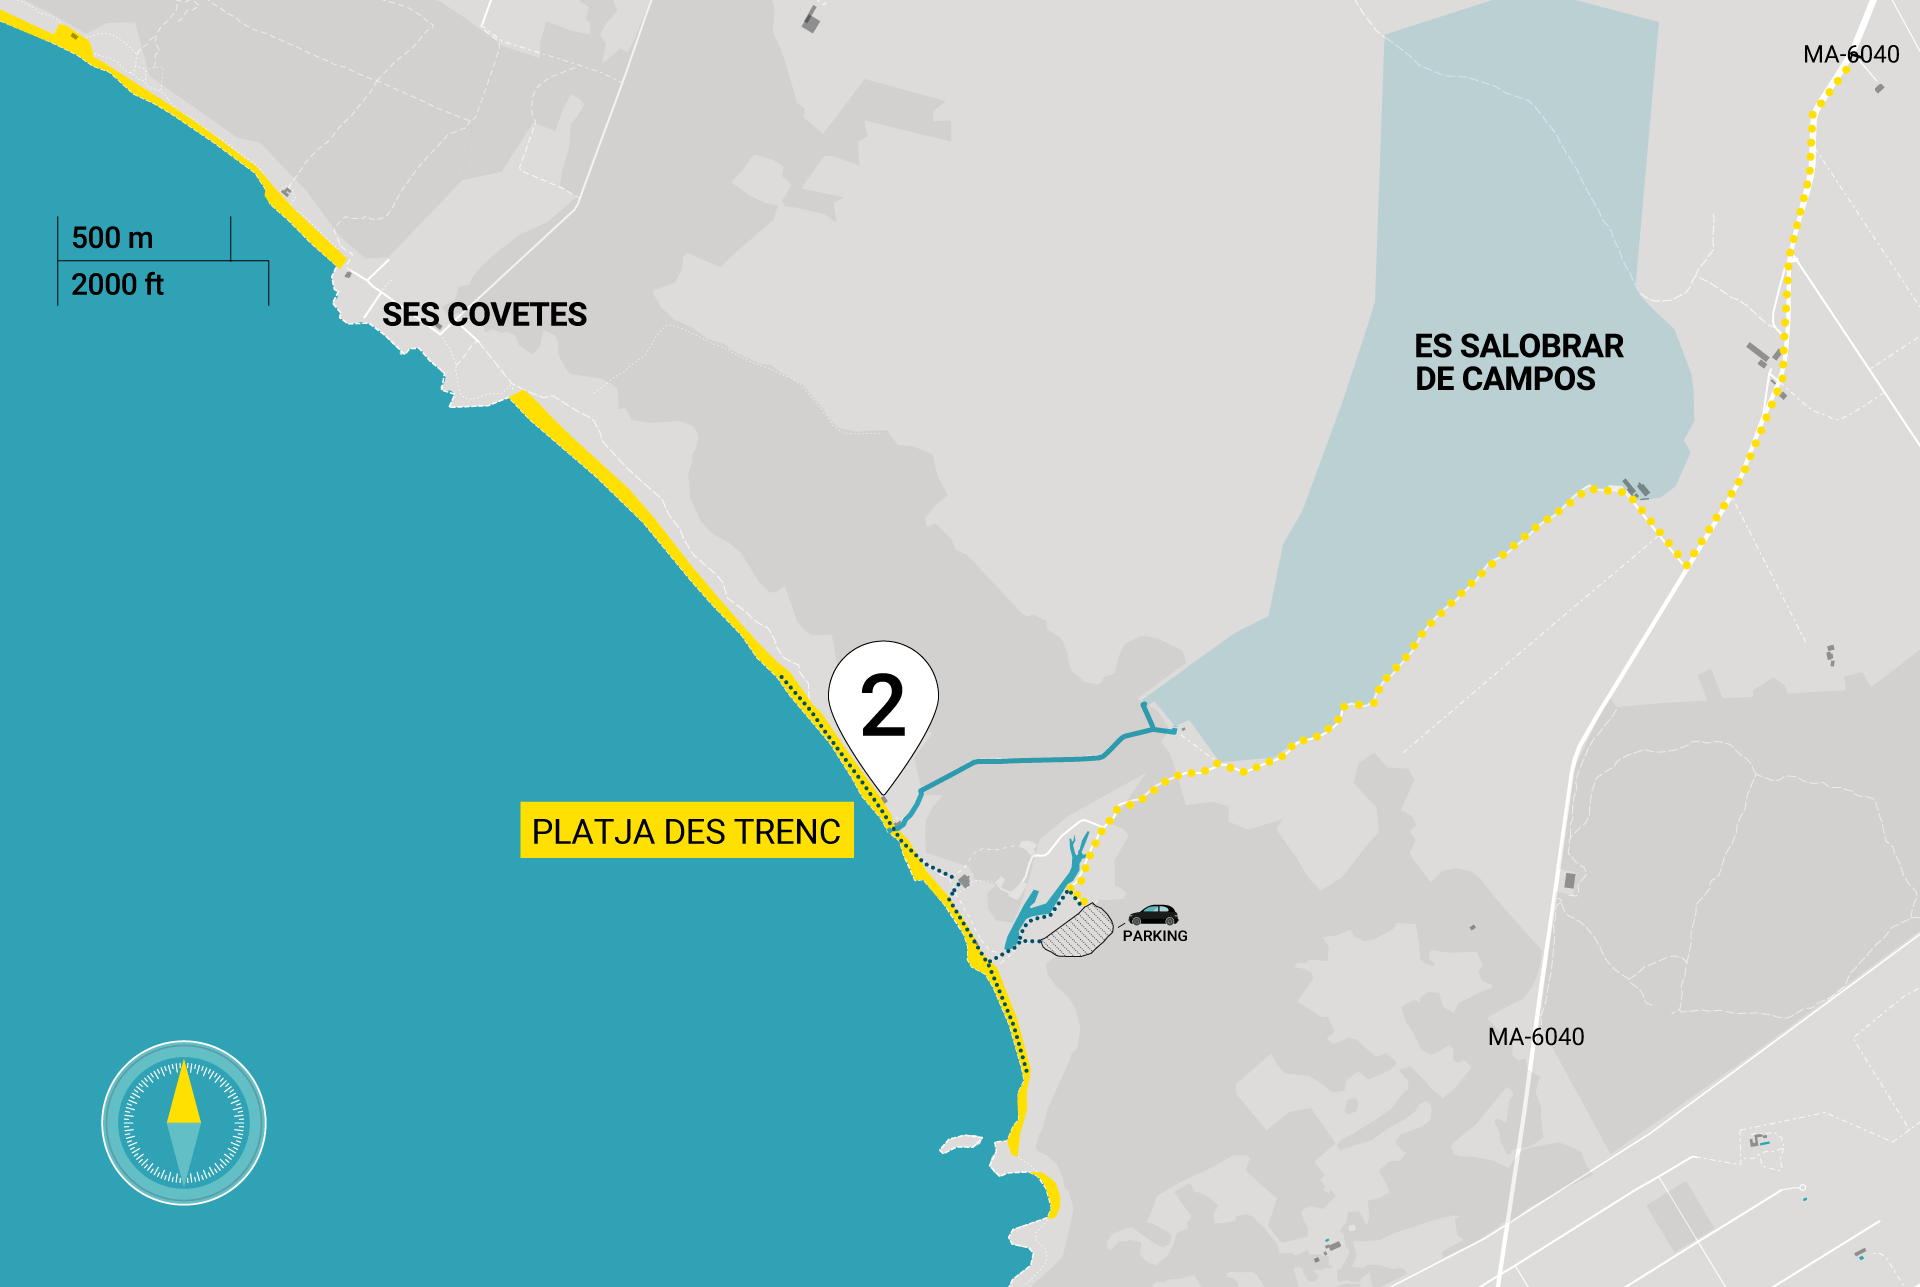 Directions | How to get to Platja des Trenc | Map